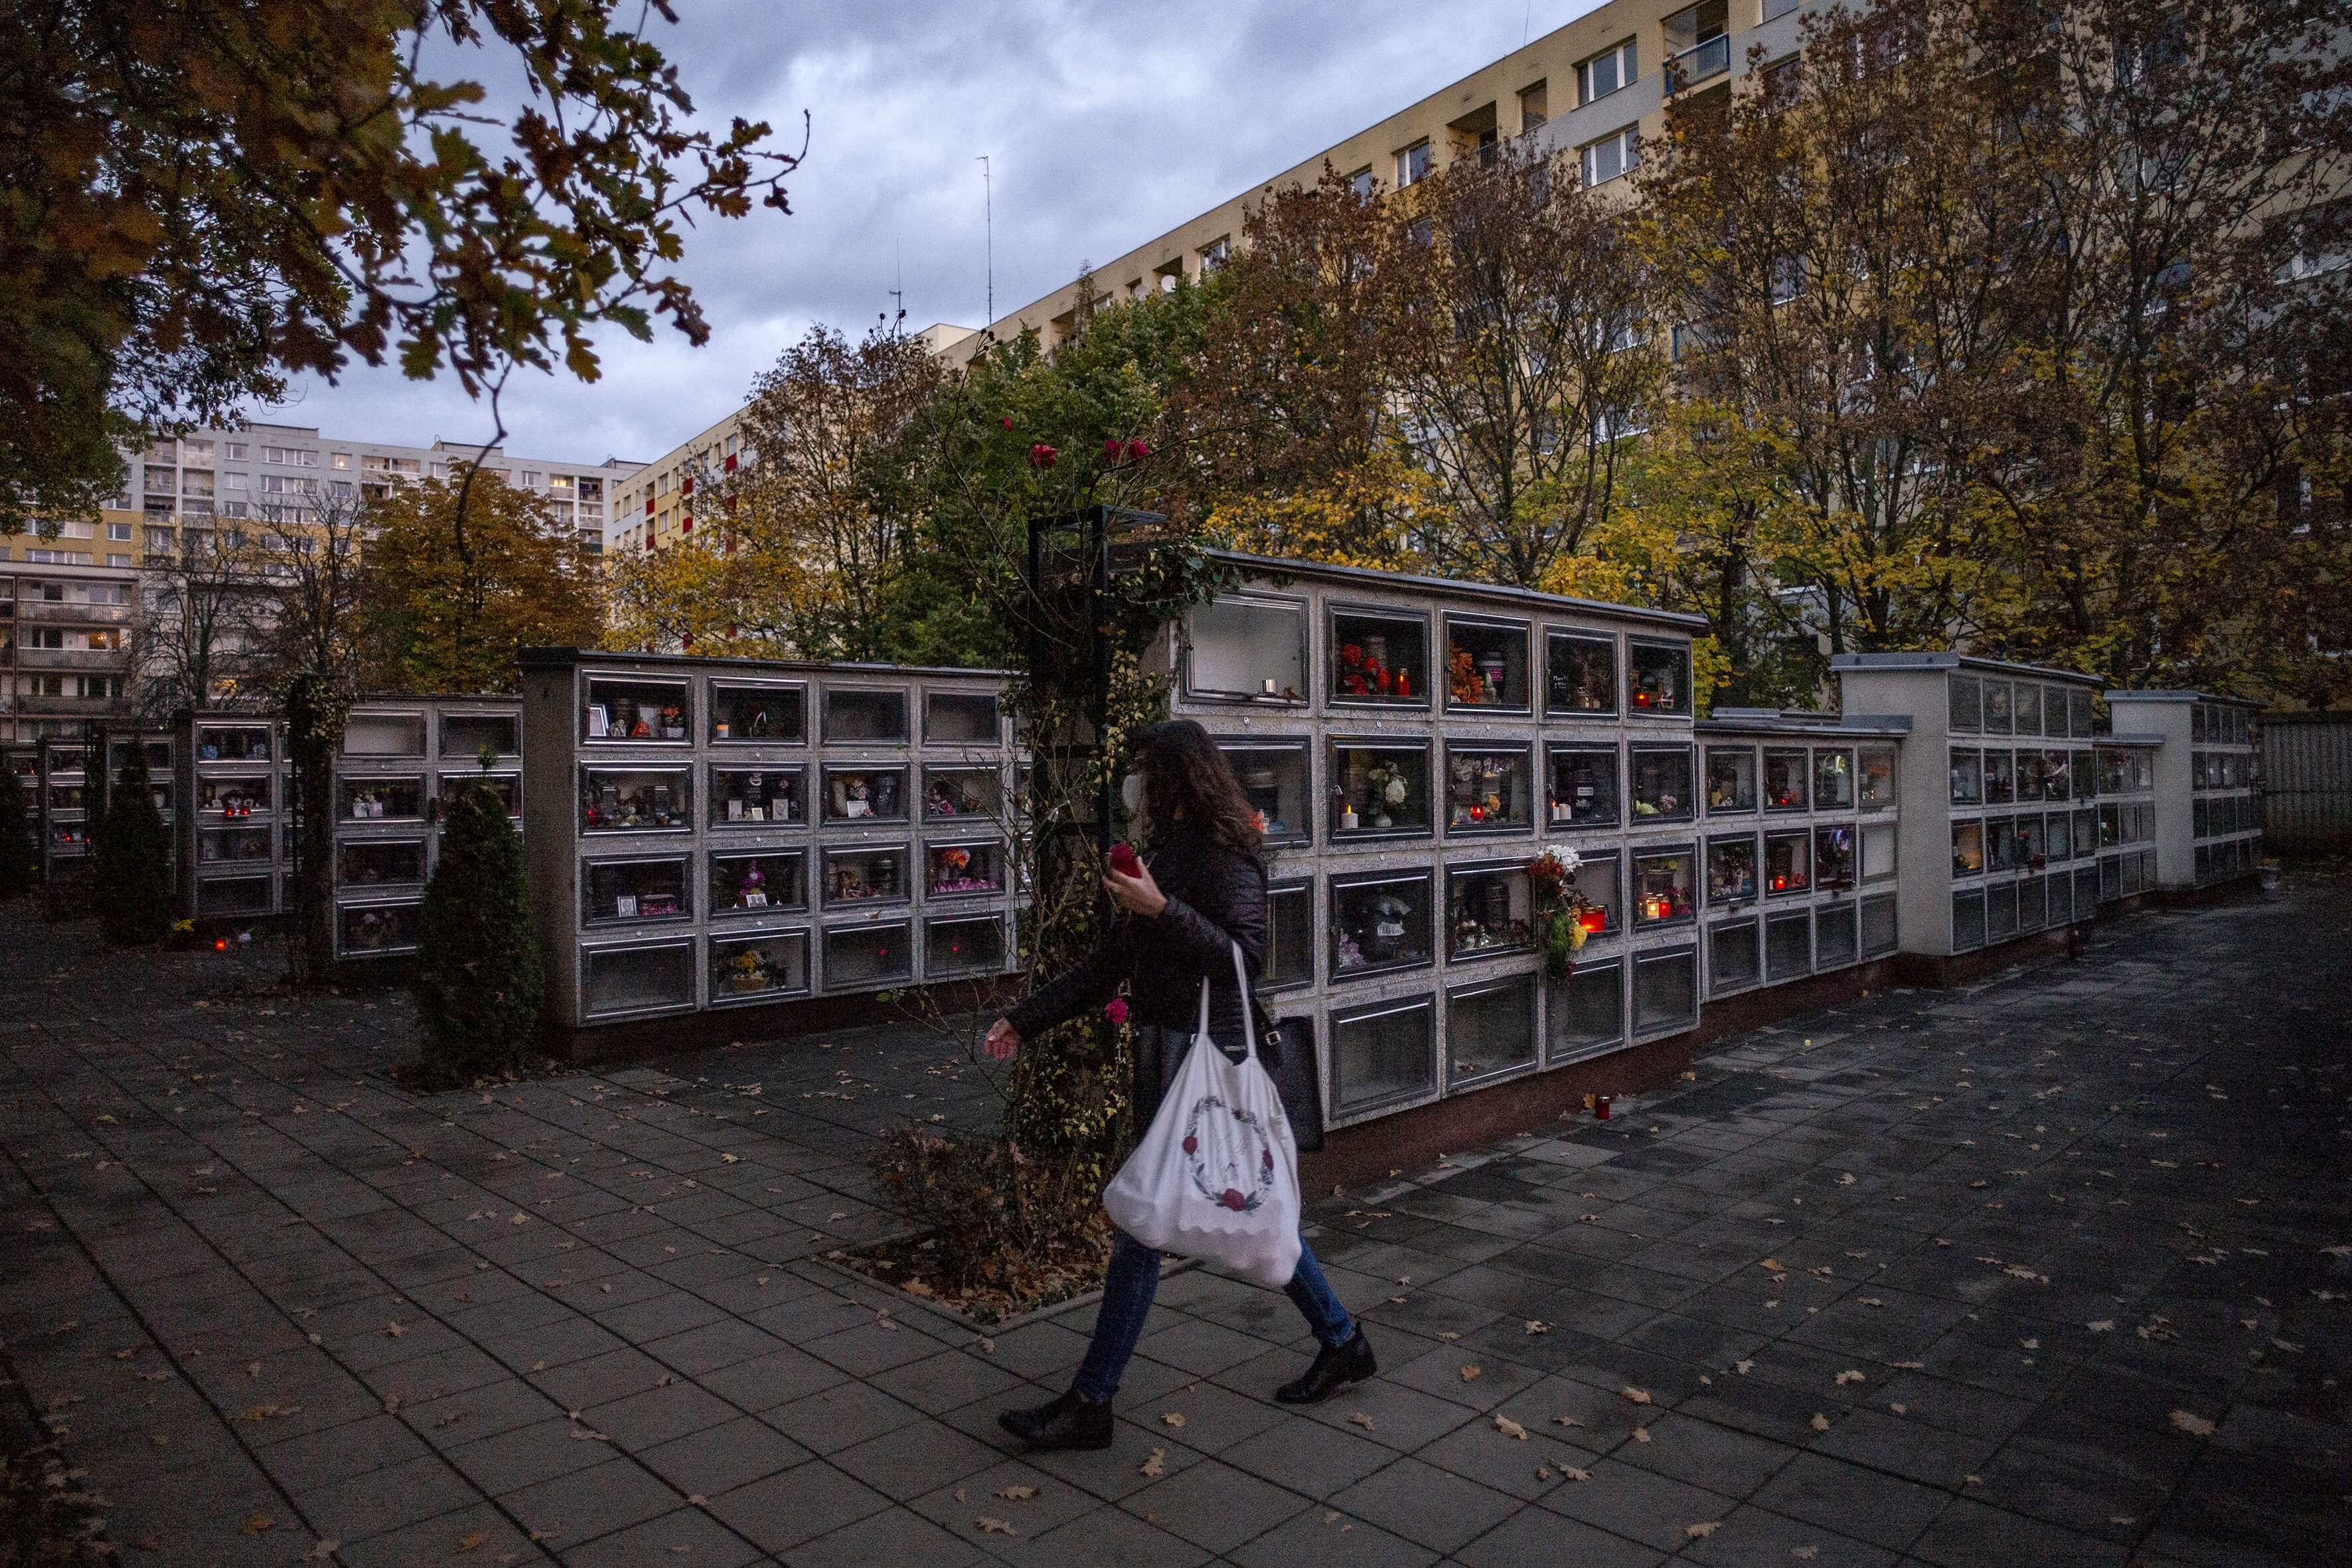 Czechs reopen elementary schools for youngest kids in first easing